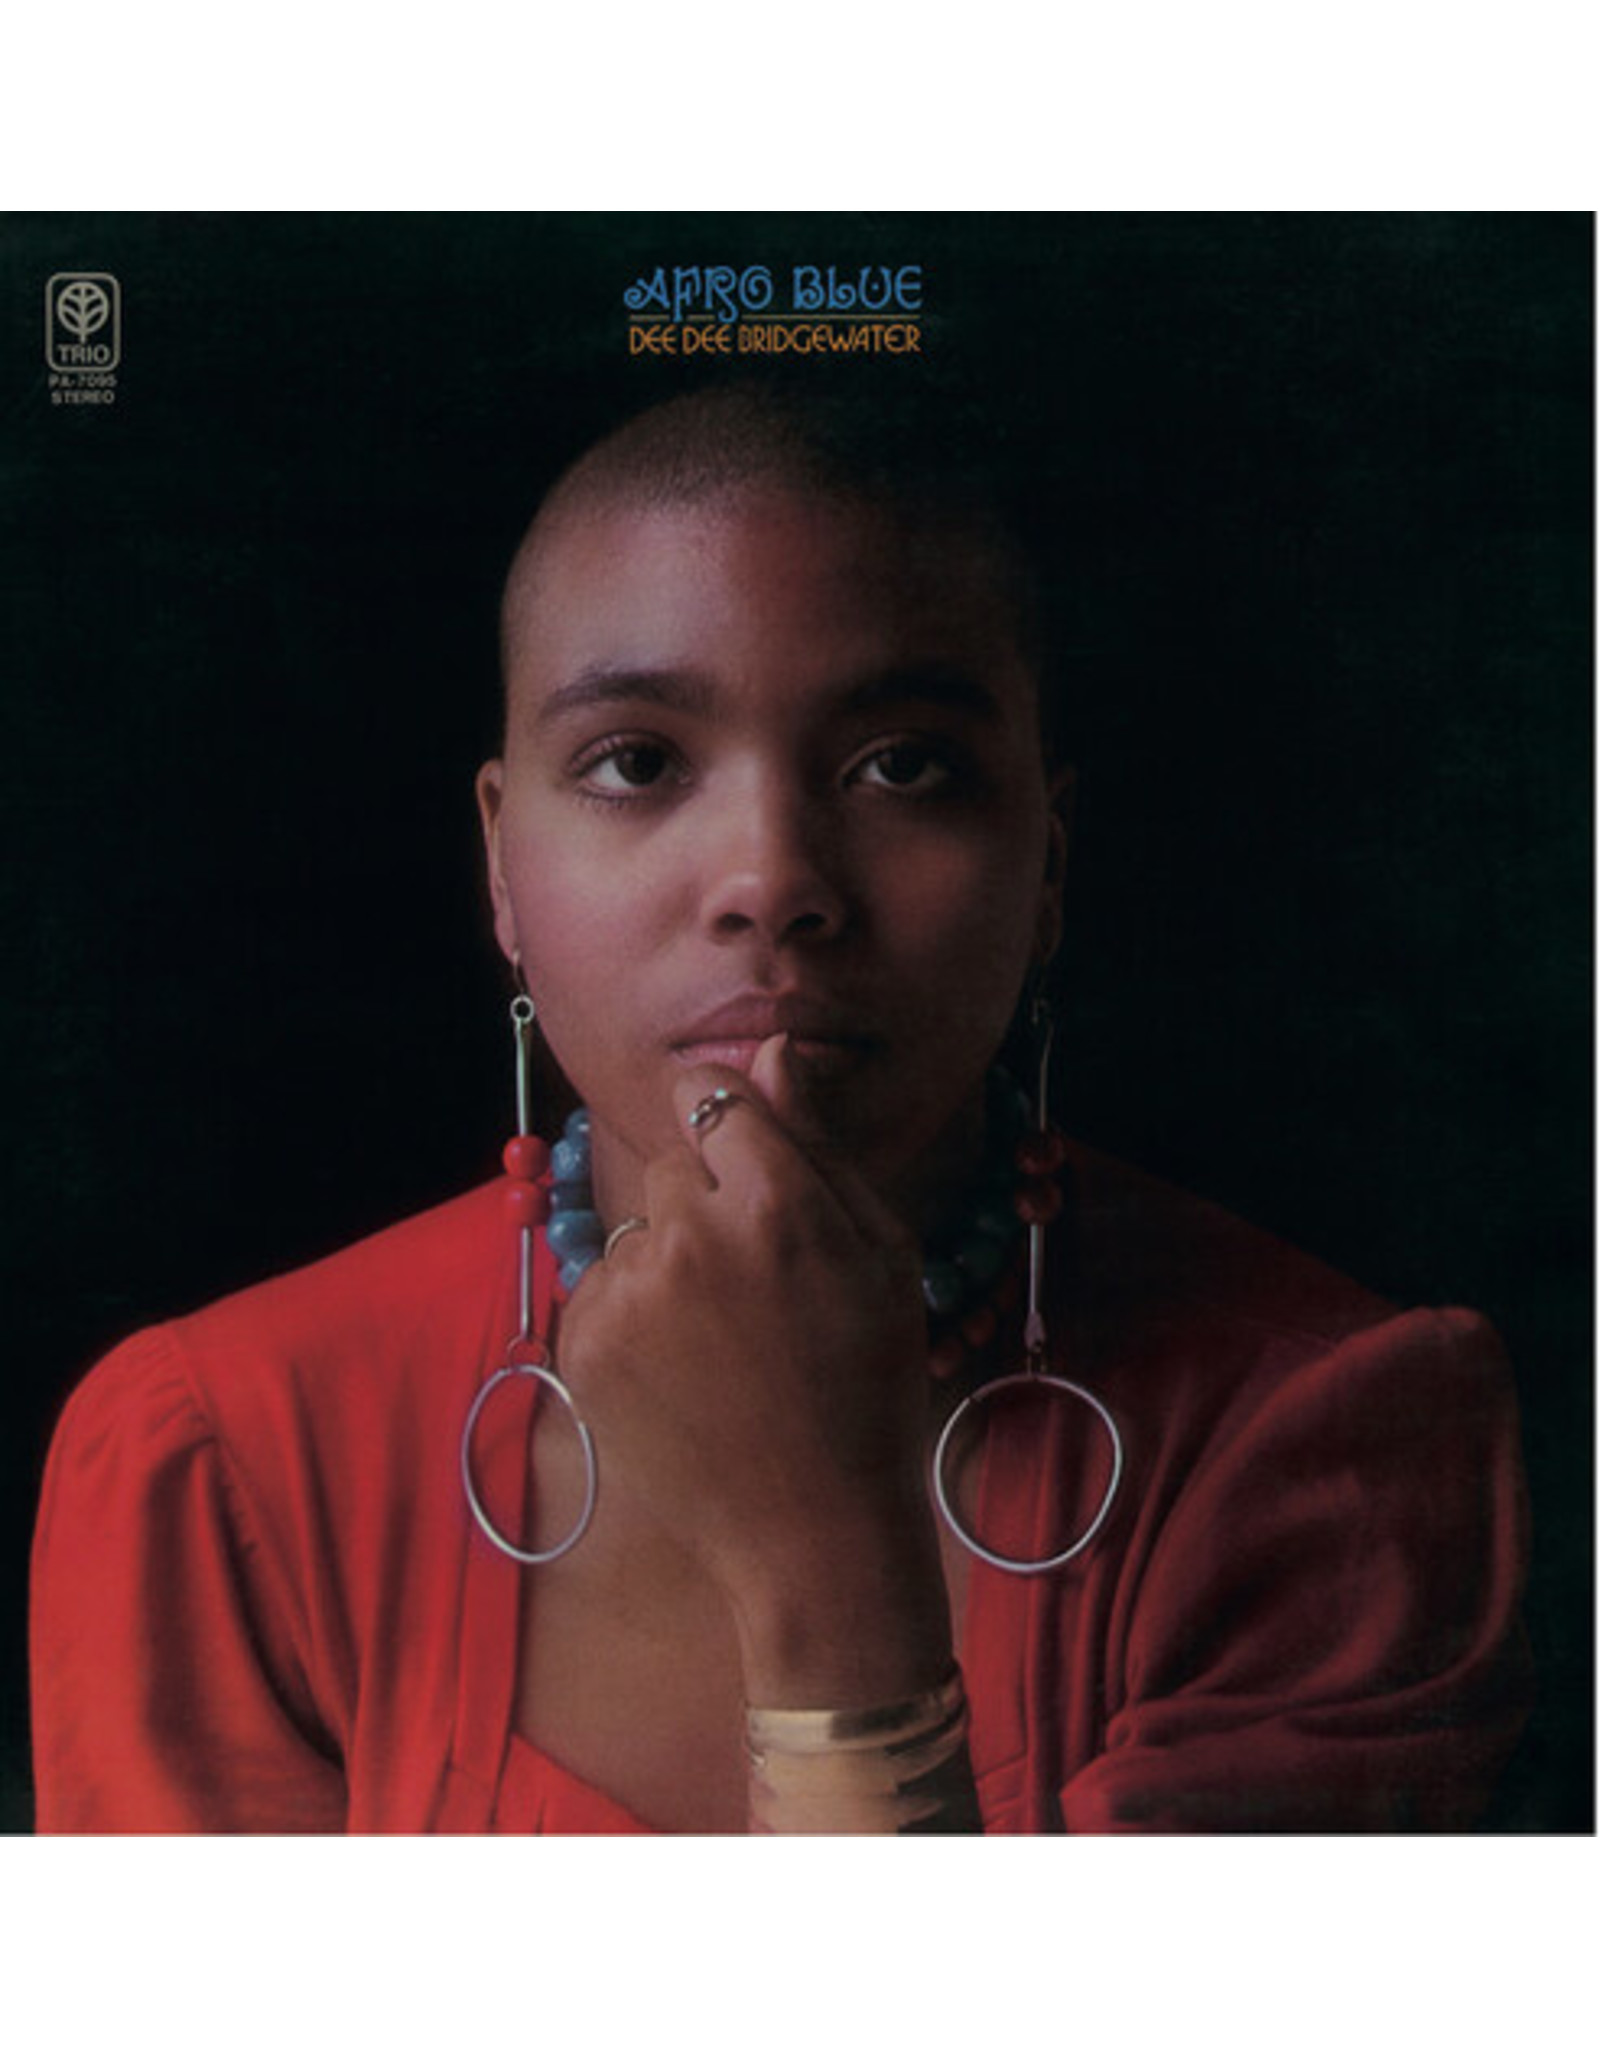 New Vinyl Dee Dee Bridgewater - Afro Blue LP